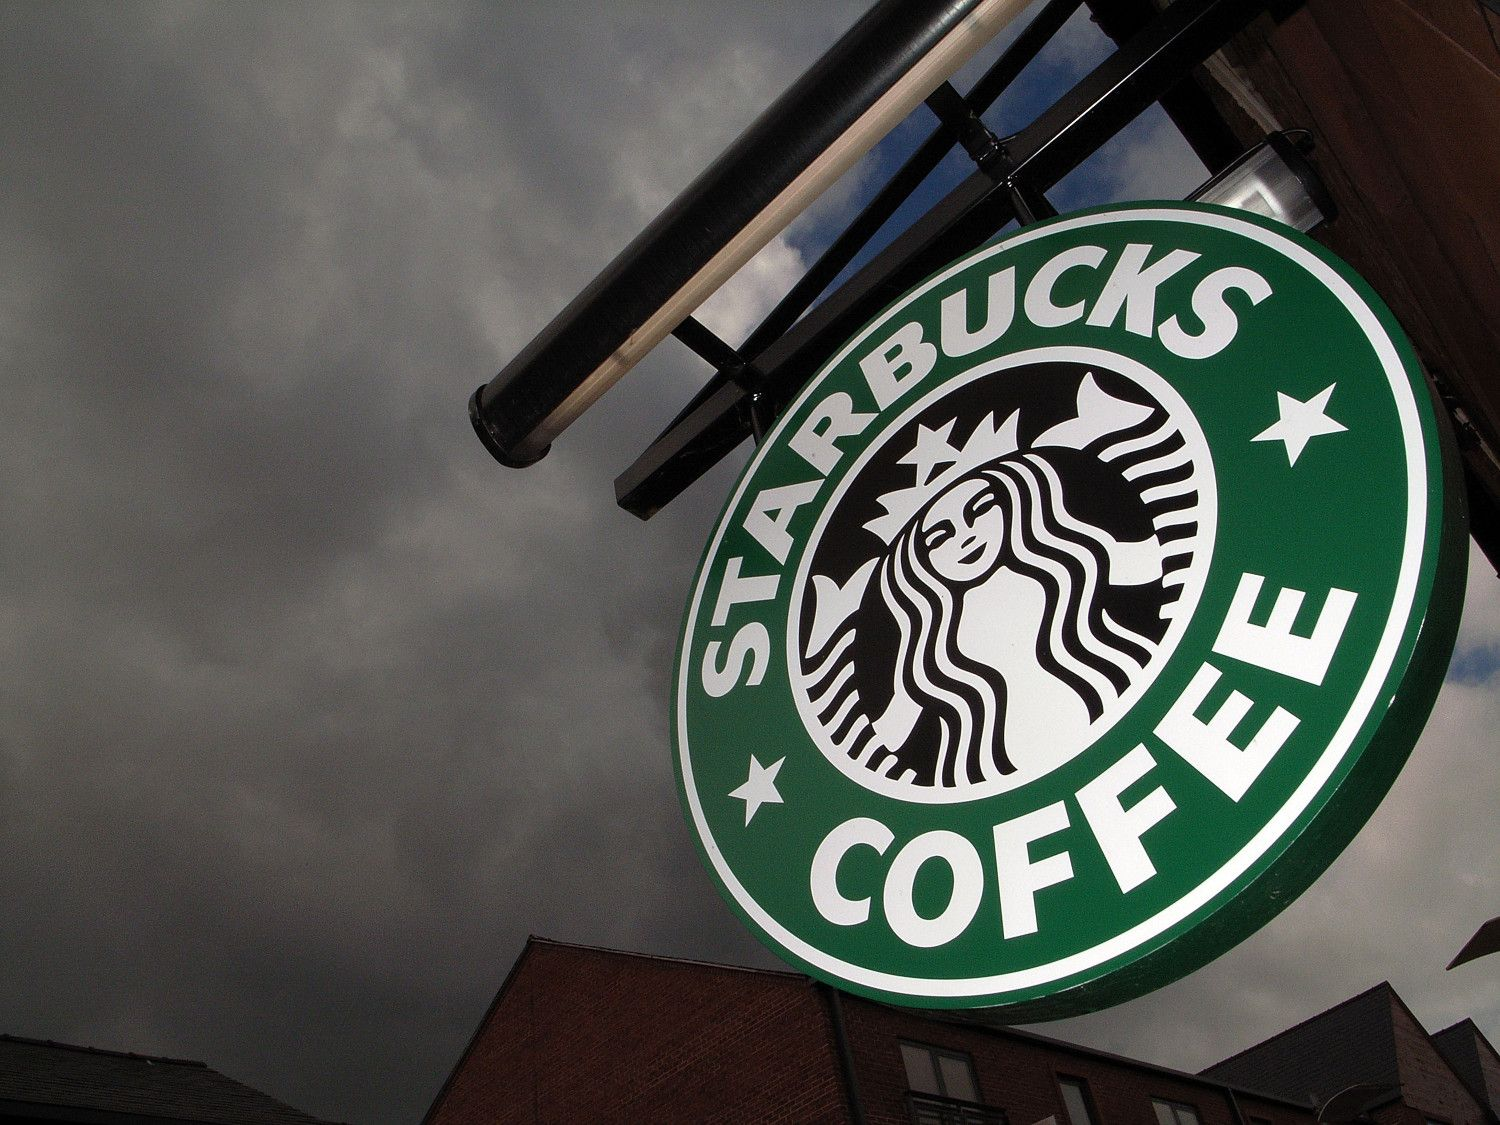 Starbucks Raises Price Of A Brewed Coffee In Most US